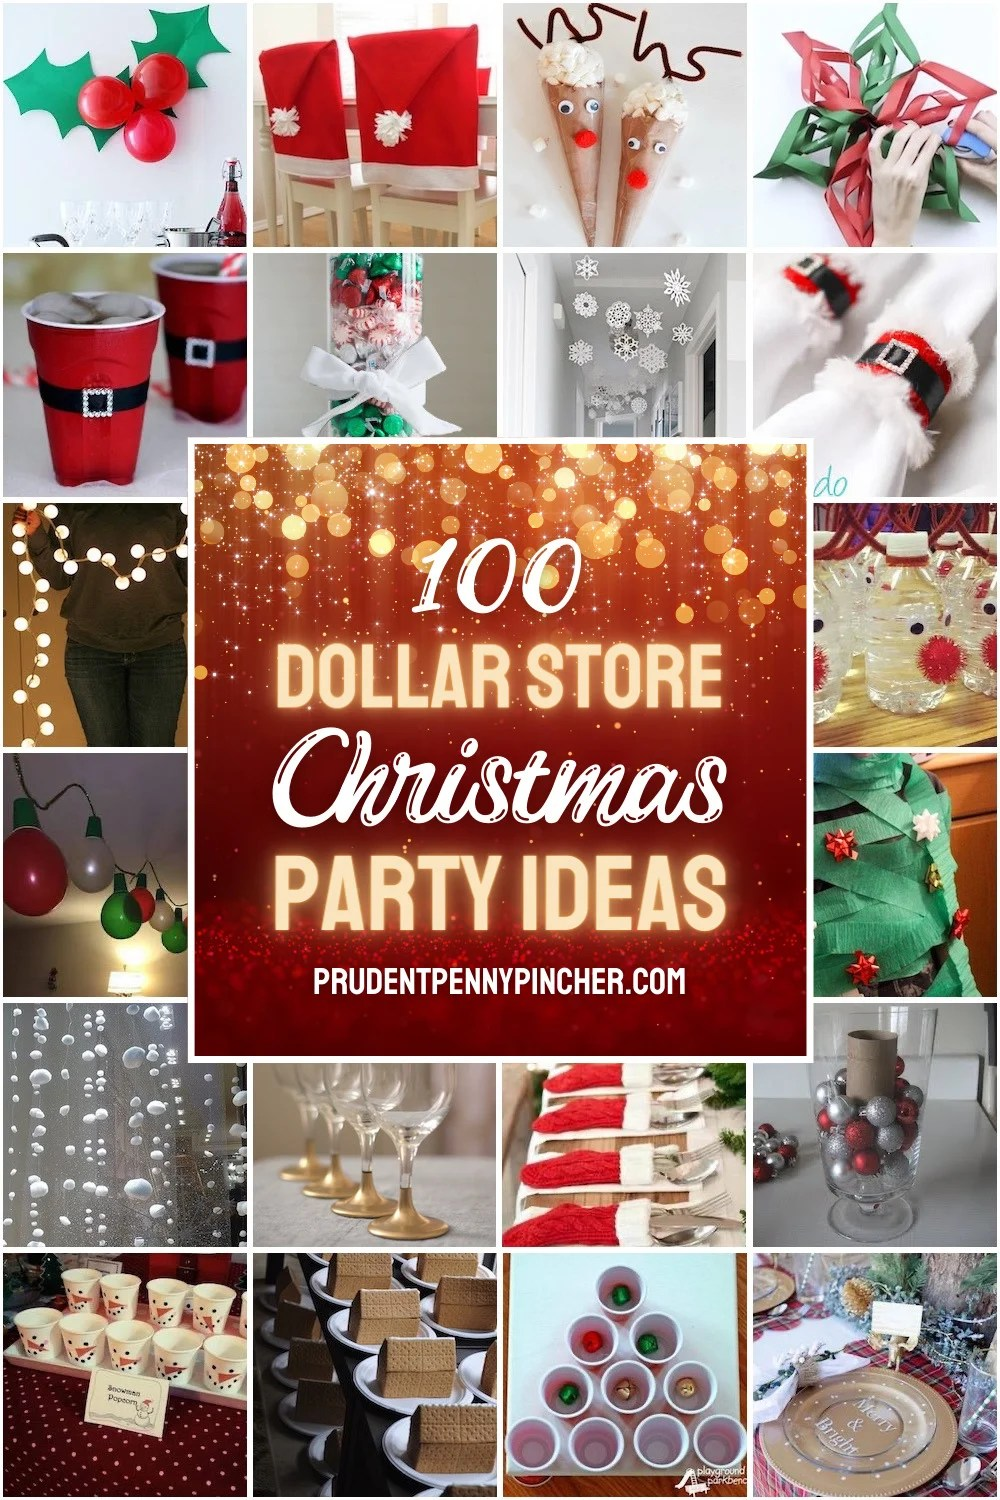 dollar store Christmas party ideas